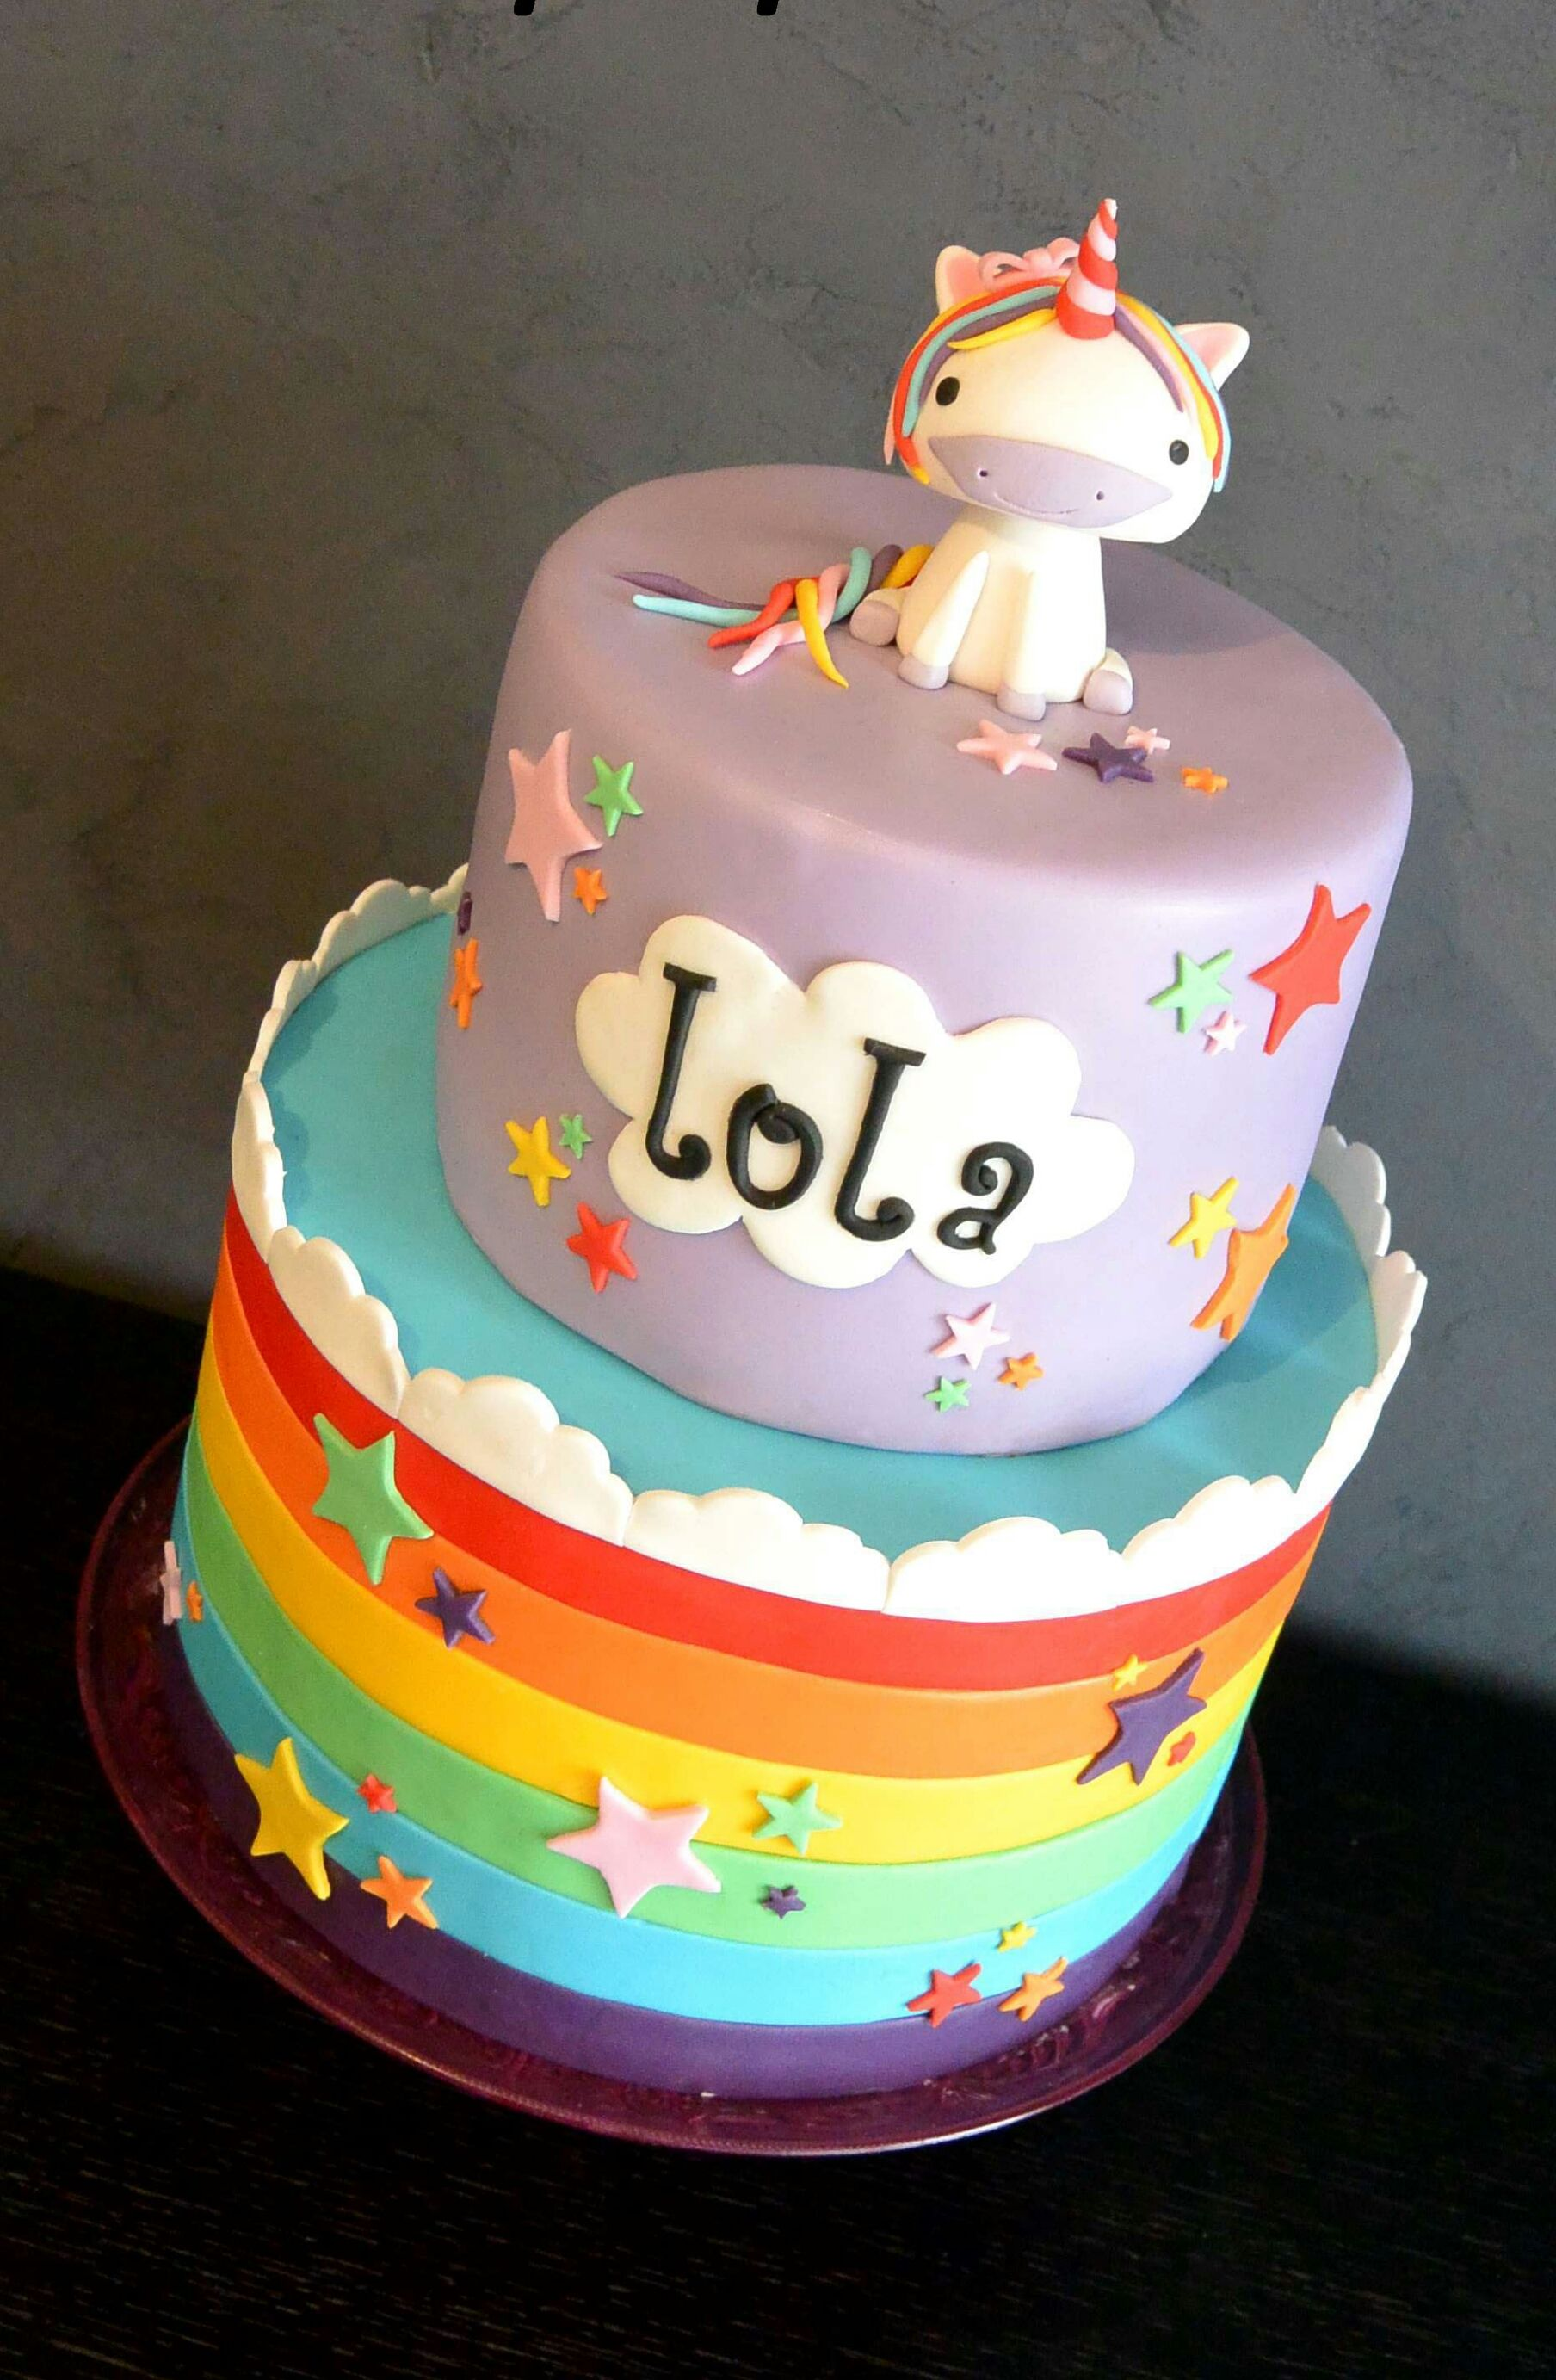 Cake design la licorne magique by clara83 cake for Decoration gateau licorne